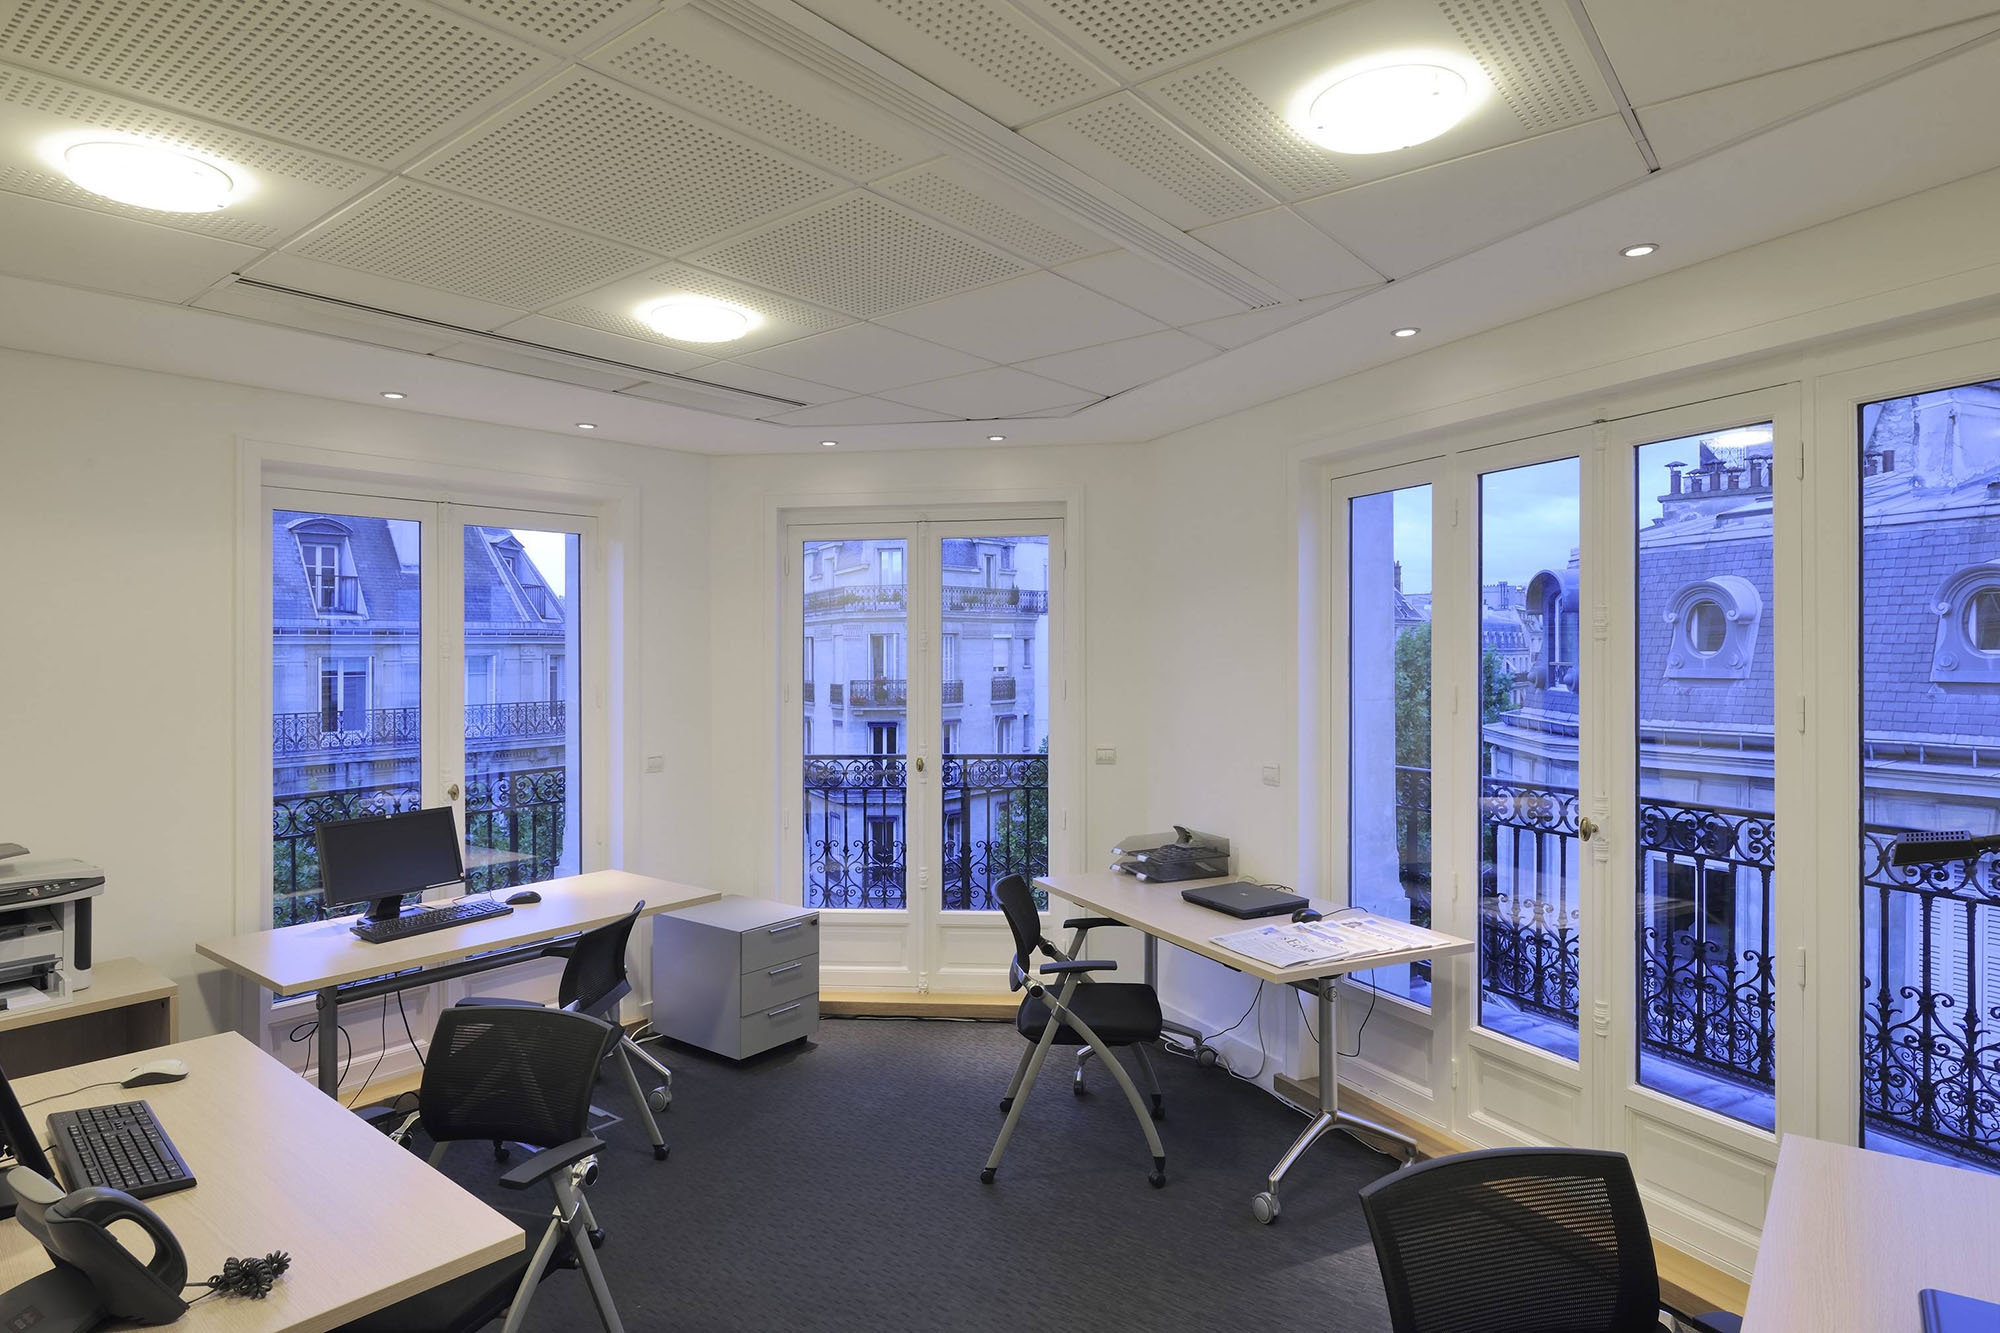 coworking space champs elysees paris. Black Bedroom Furniture Sets. Home Design Ideas